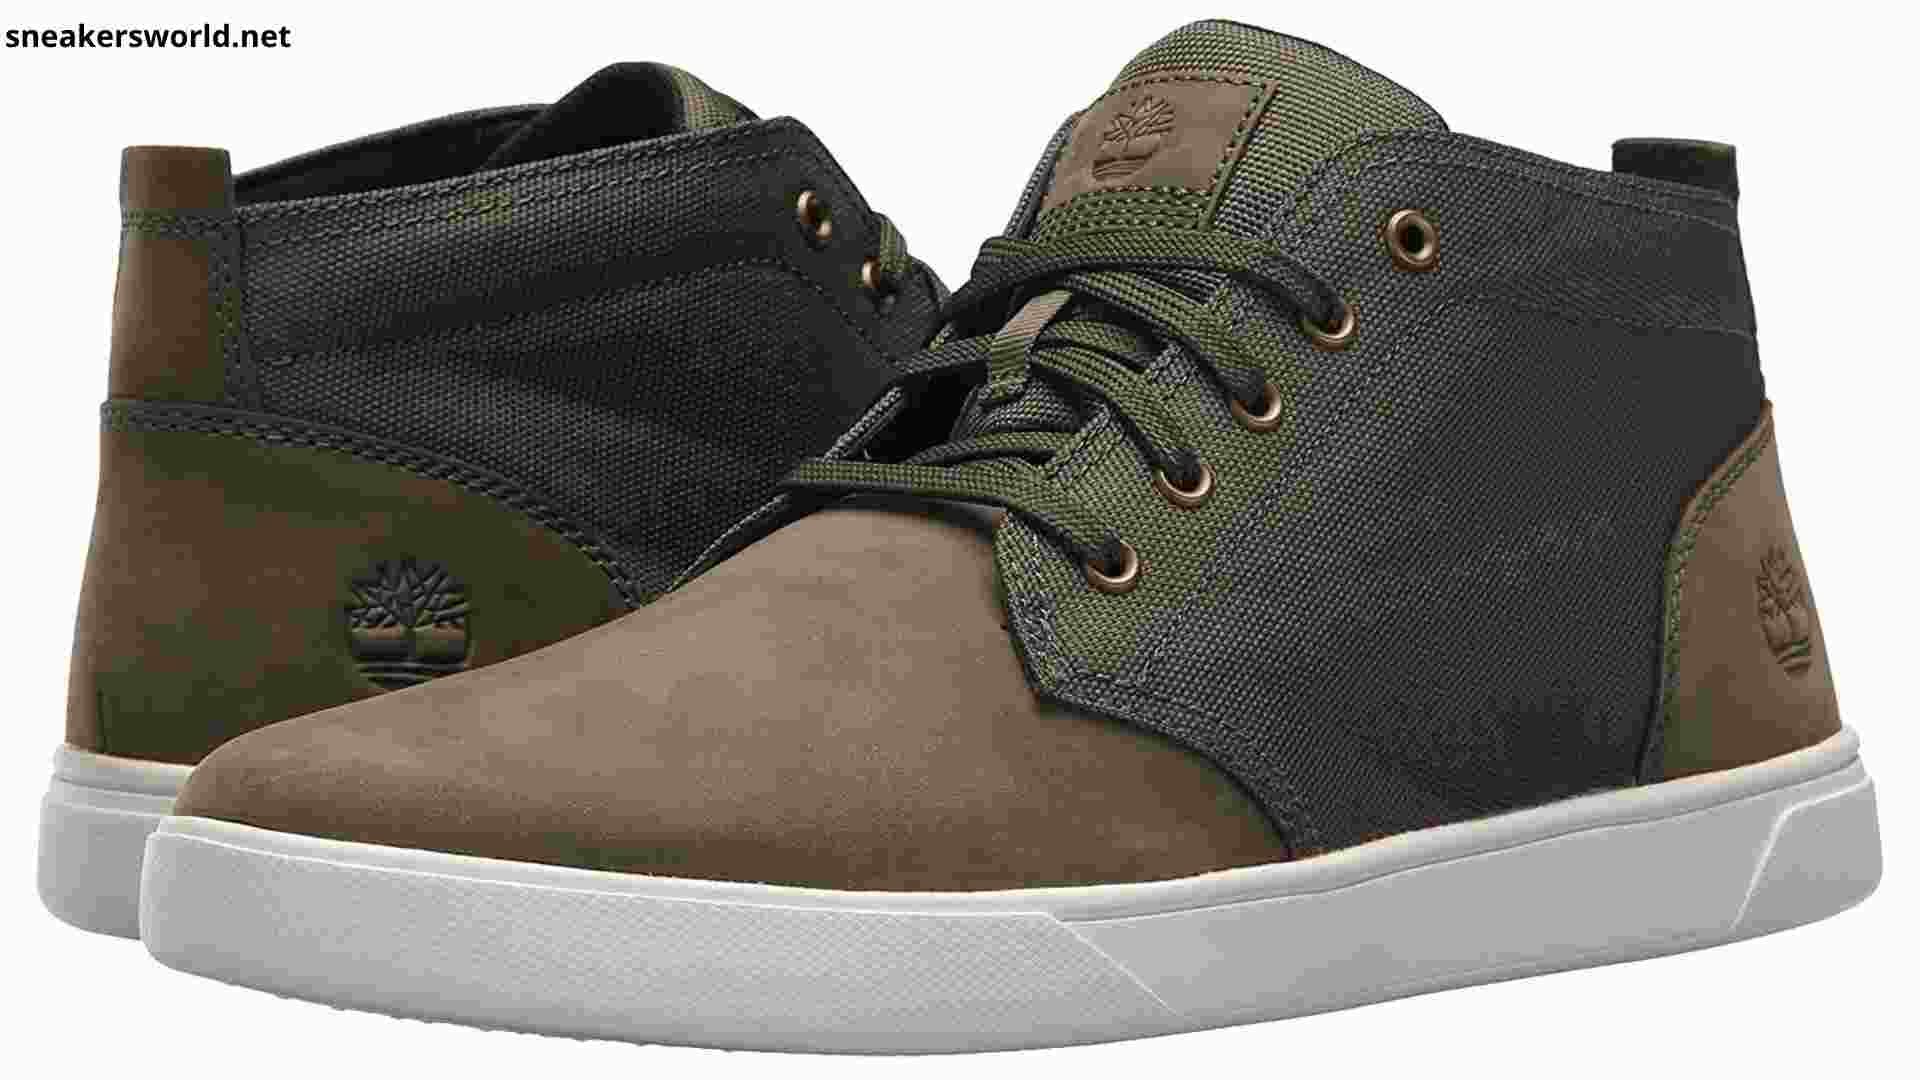 One of the Best Casual Sneakers for Men ,Men's Groveton LTT Chukka Leather & Fabric Sneaker